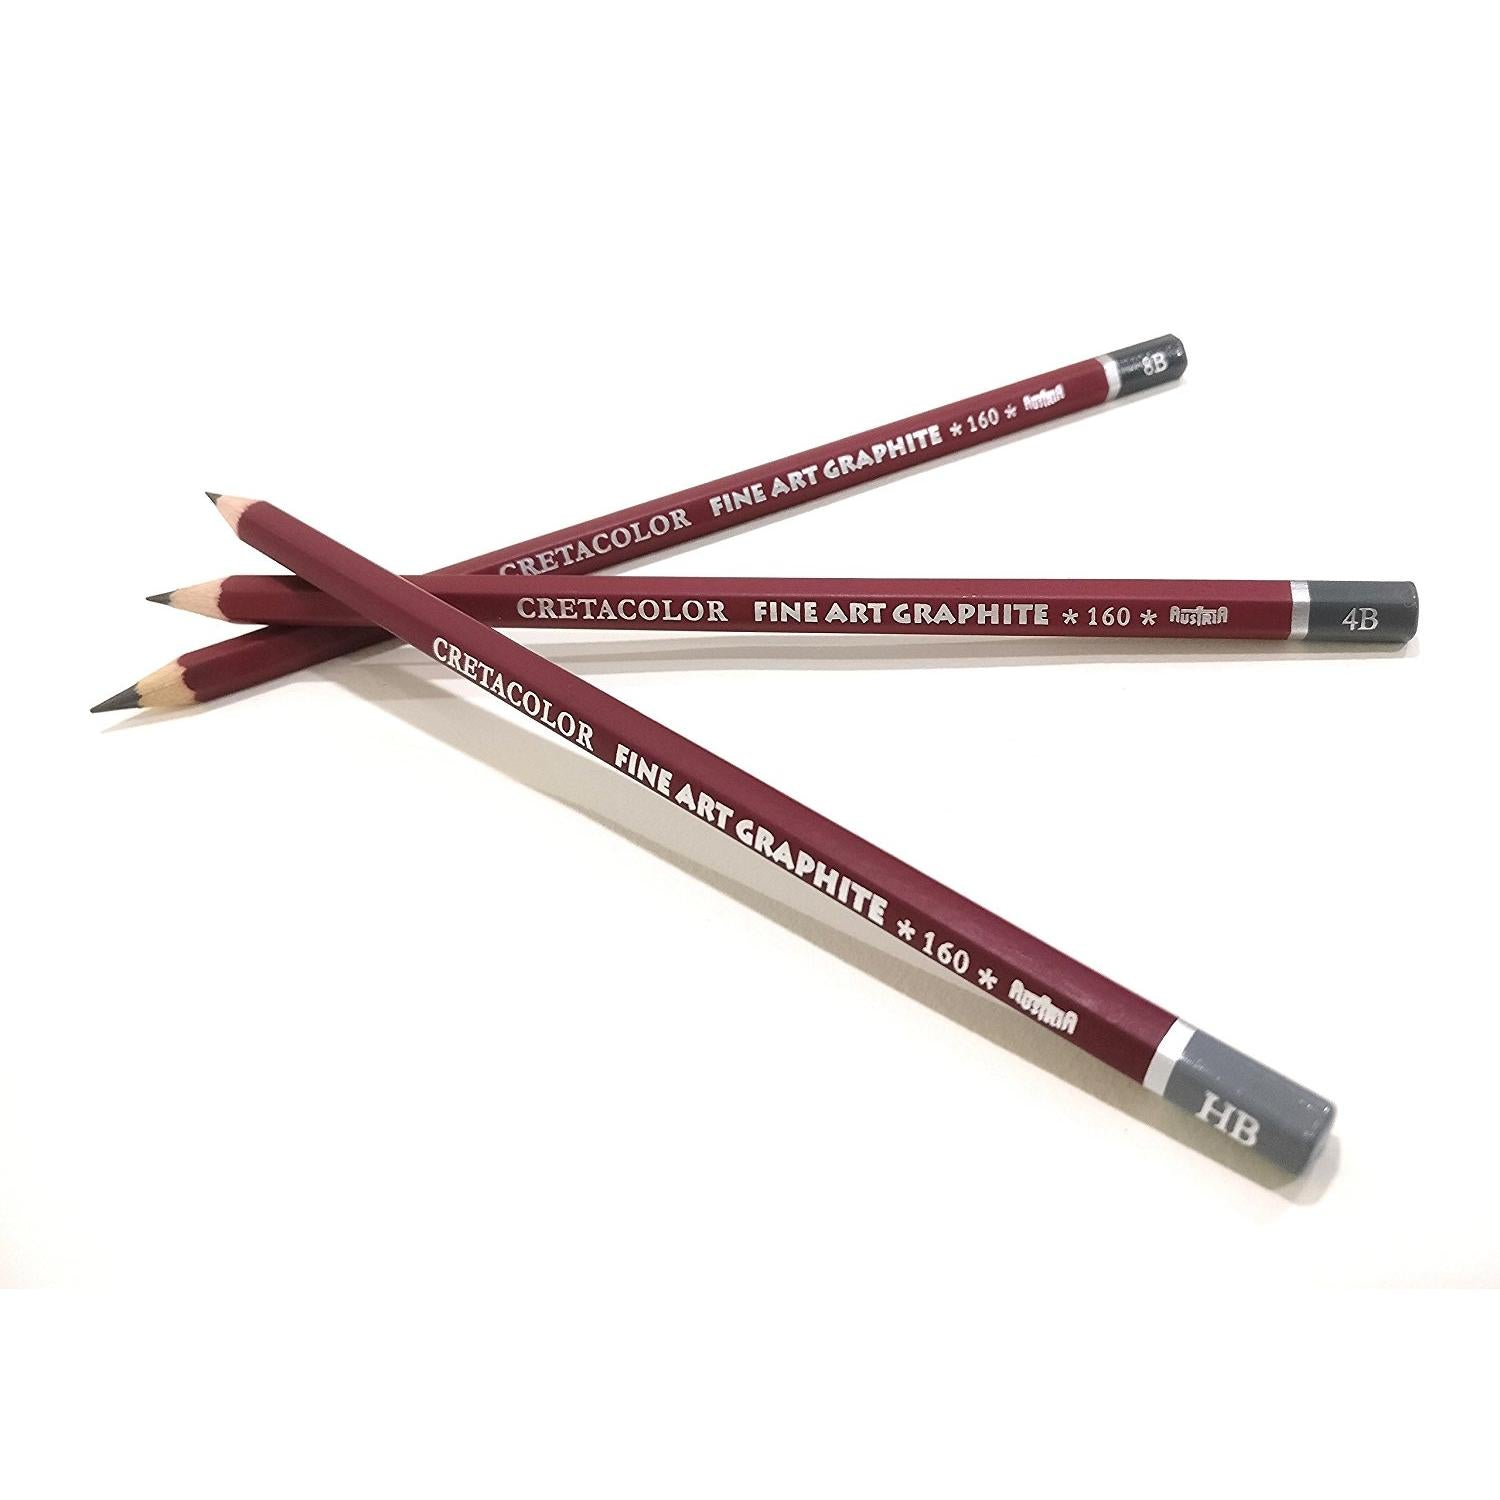 Try It ! Cretacolor Cleos Fine Art Graphite Pencils (HB, 4B & 8B)